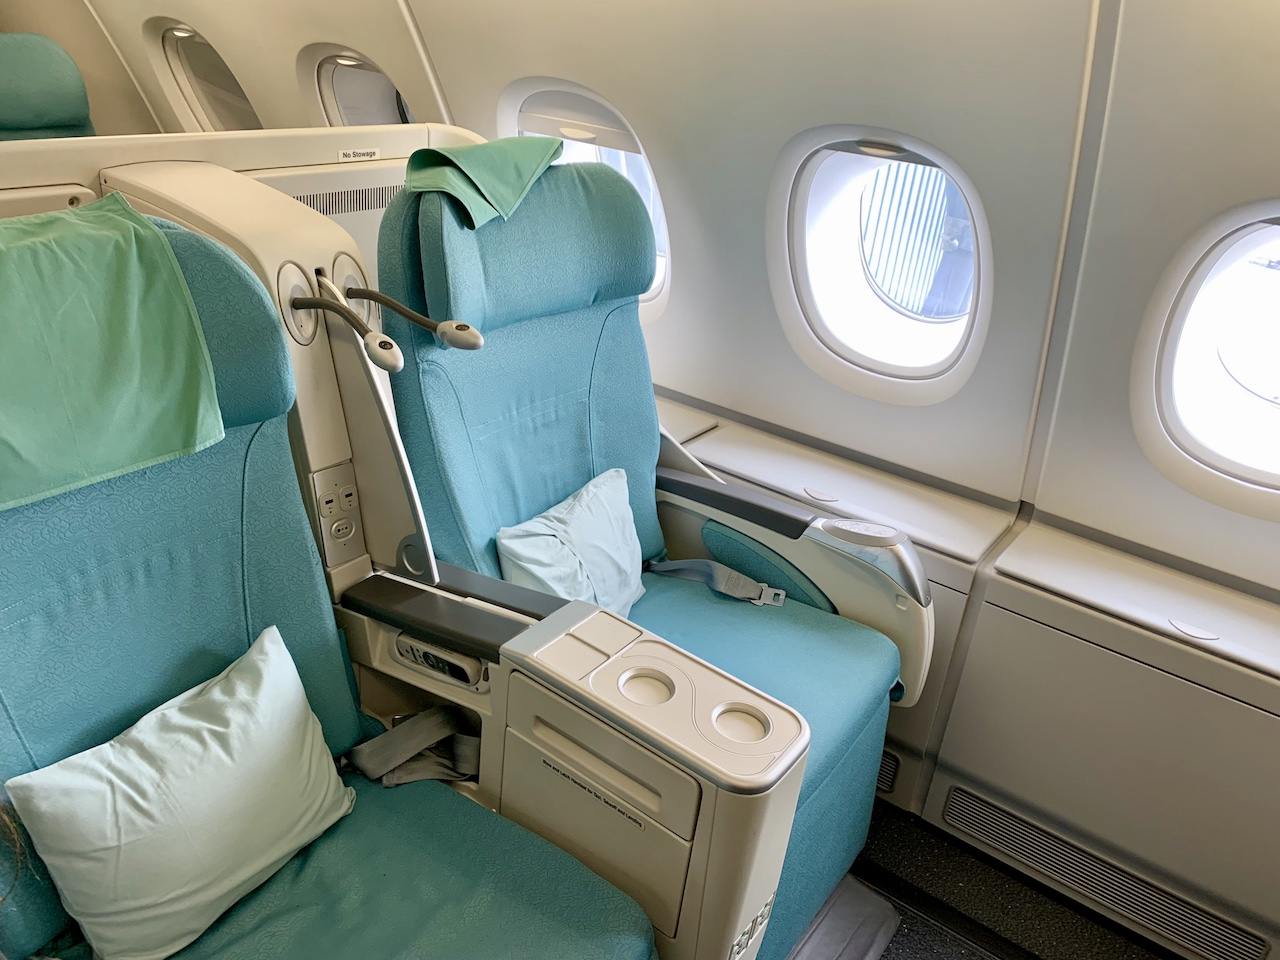 Travel during COVID-19 in Korean Airlines lie flat business class